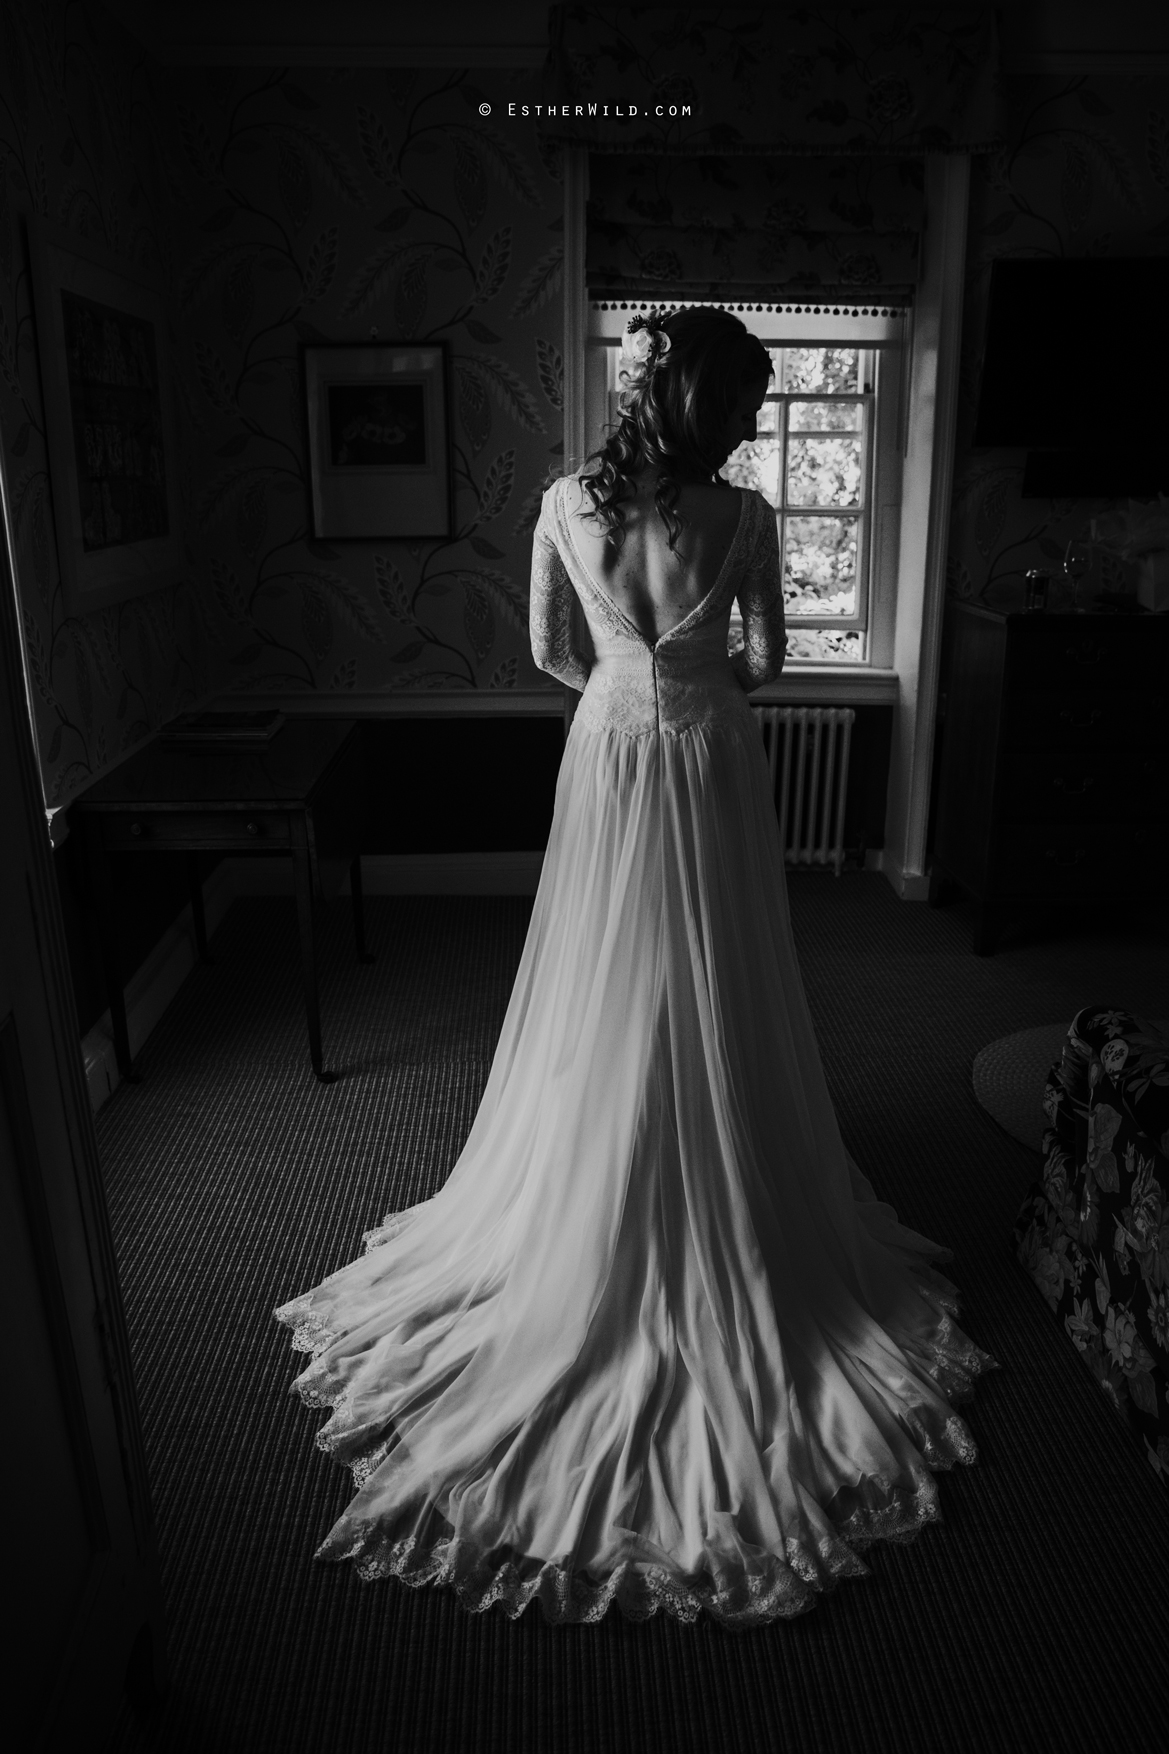 Assembly_House_Norwich_Norfolk_Esther_Wild_Photographer_IMG_0348-2.jpg